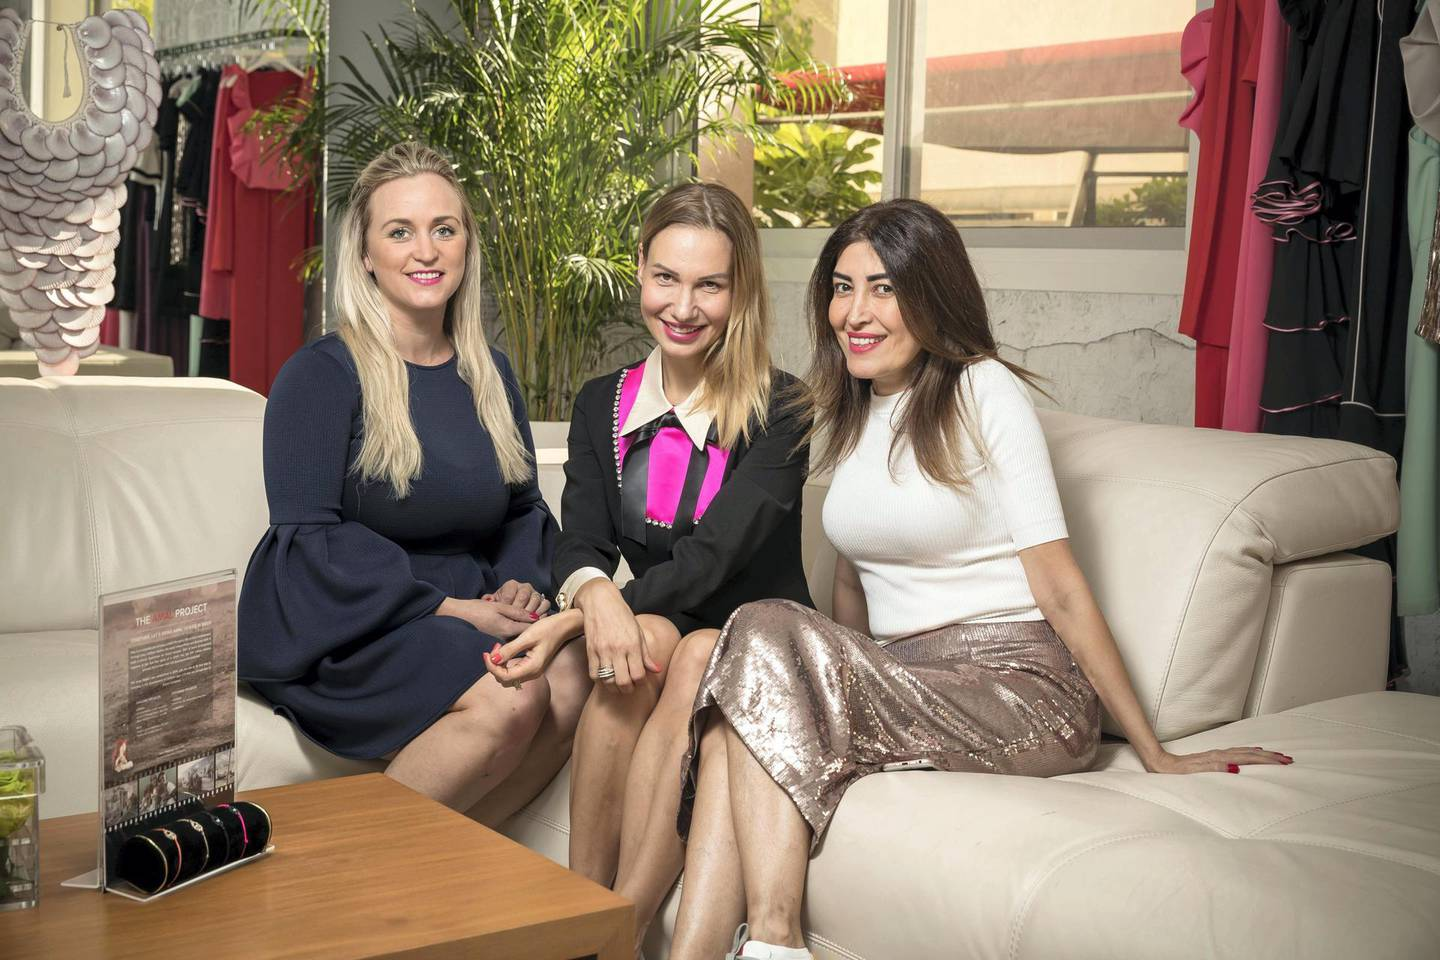 DUBAI, UNITED ARAB EMIRATES. 16 JANUARY 2018. LtoR: Christine Vorster , Nadine Arton, Lina Bou Alwan. Founders of the UAE charity The Amal Project, which is building solar-powered play centers for children in conflict areas abroad. (Photo: Antonie Robertson/The National) Journalist: Hafsa Lodi. Section: Weekend.